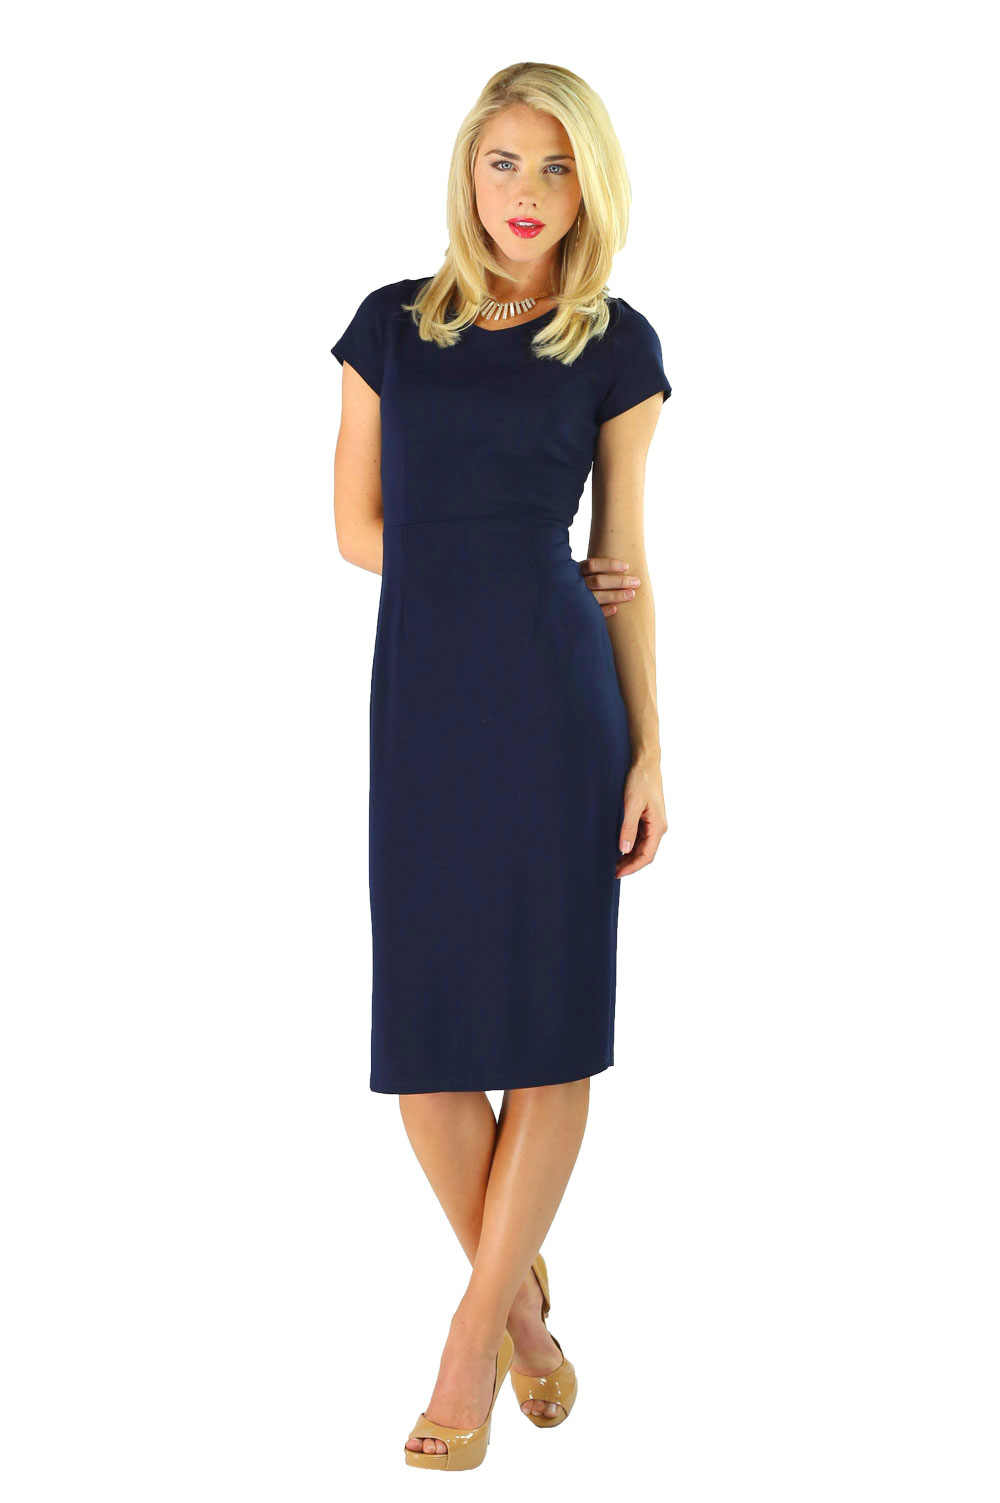 Modest Dresses: Sara in Navy Blue